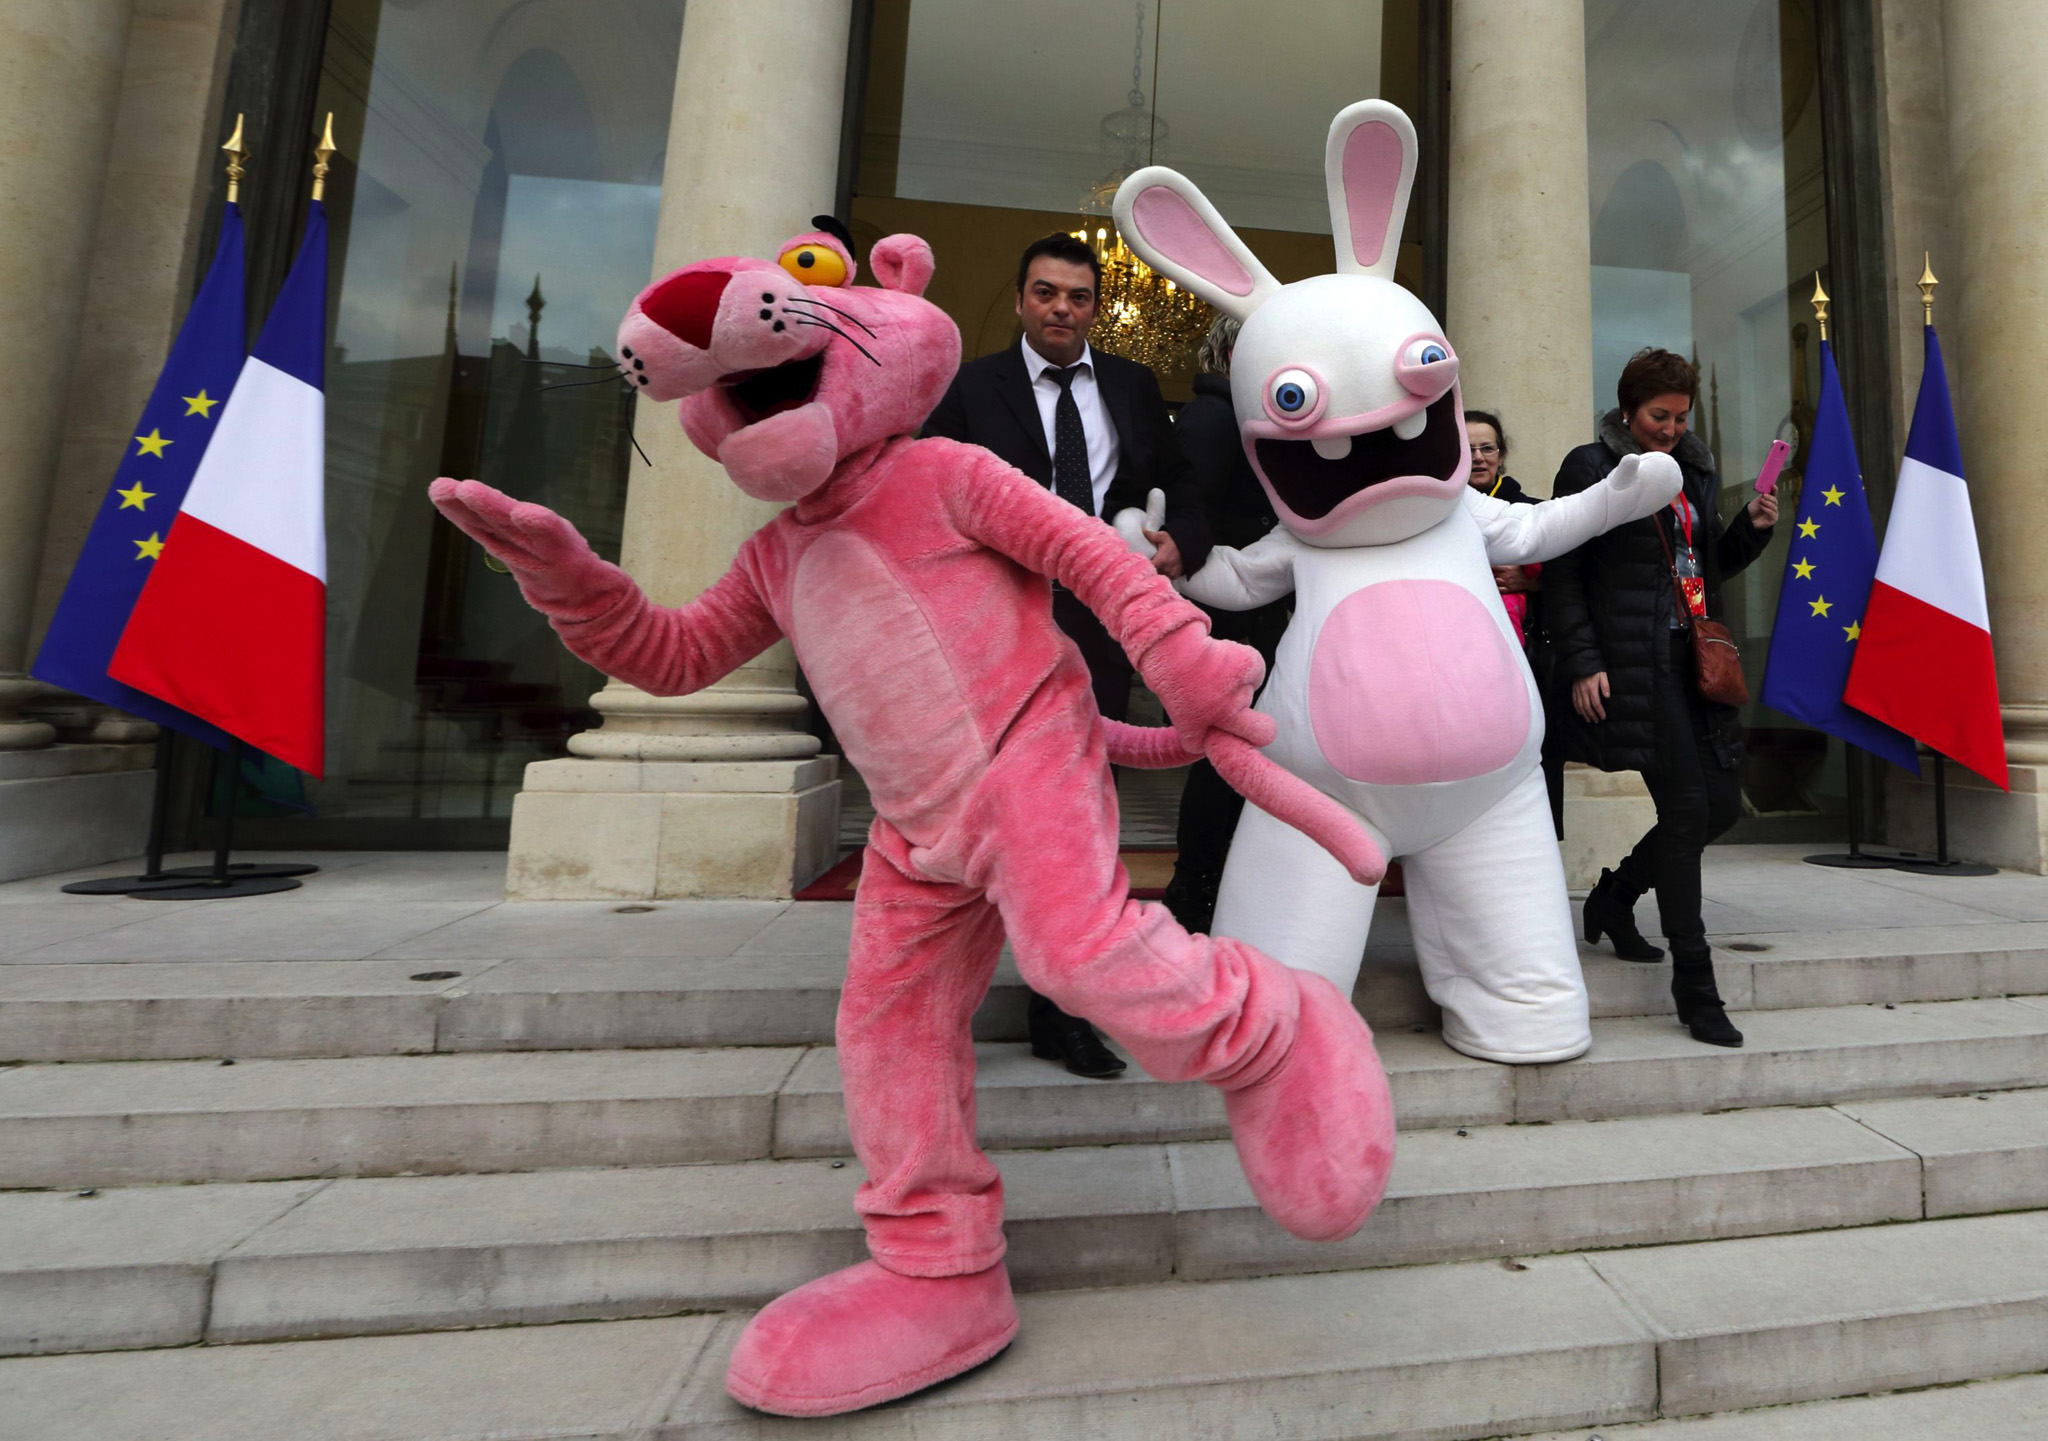 Life-size cartoon characters of the Pink Panther and Raving Rabbit (Lapin Cretin) pose on the stairs of the Elysee Palace at the end of the Elysee Palace Christmas party, in Paris.